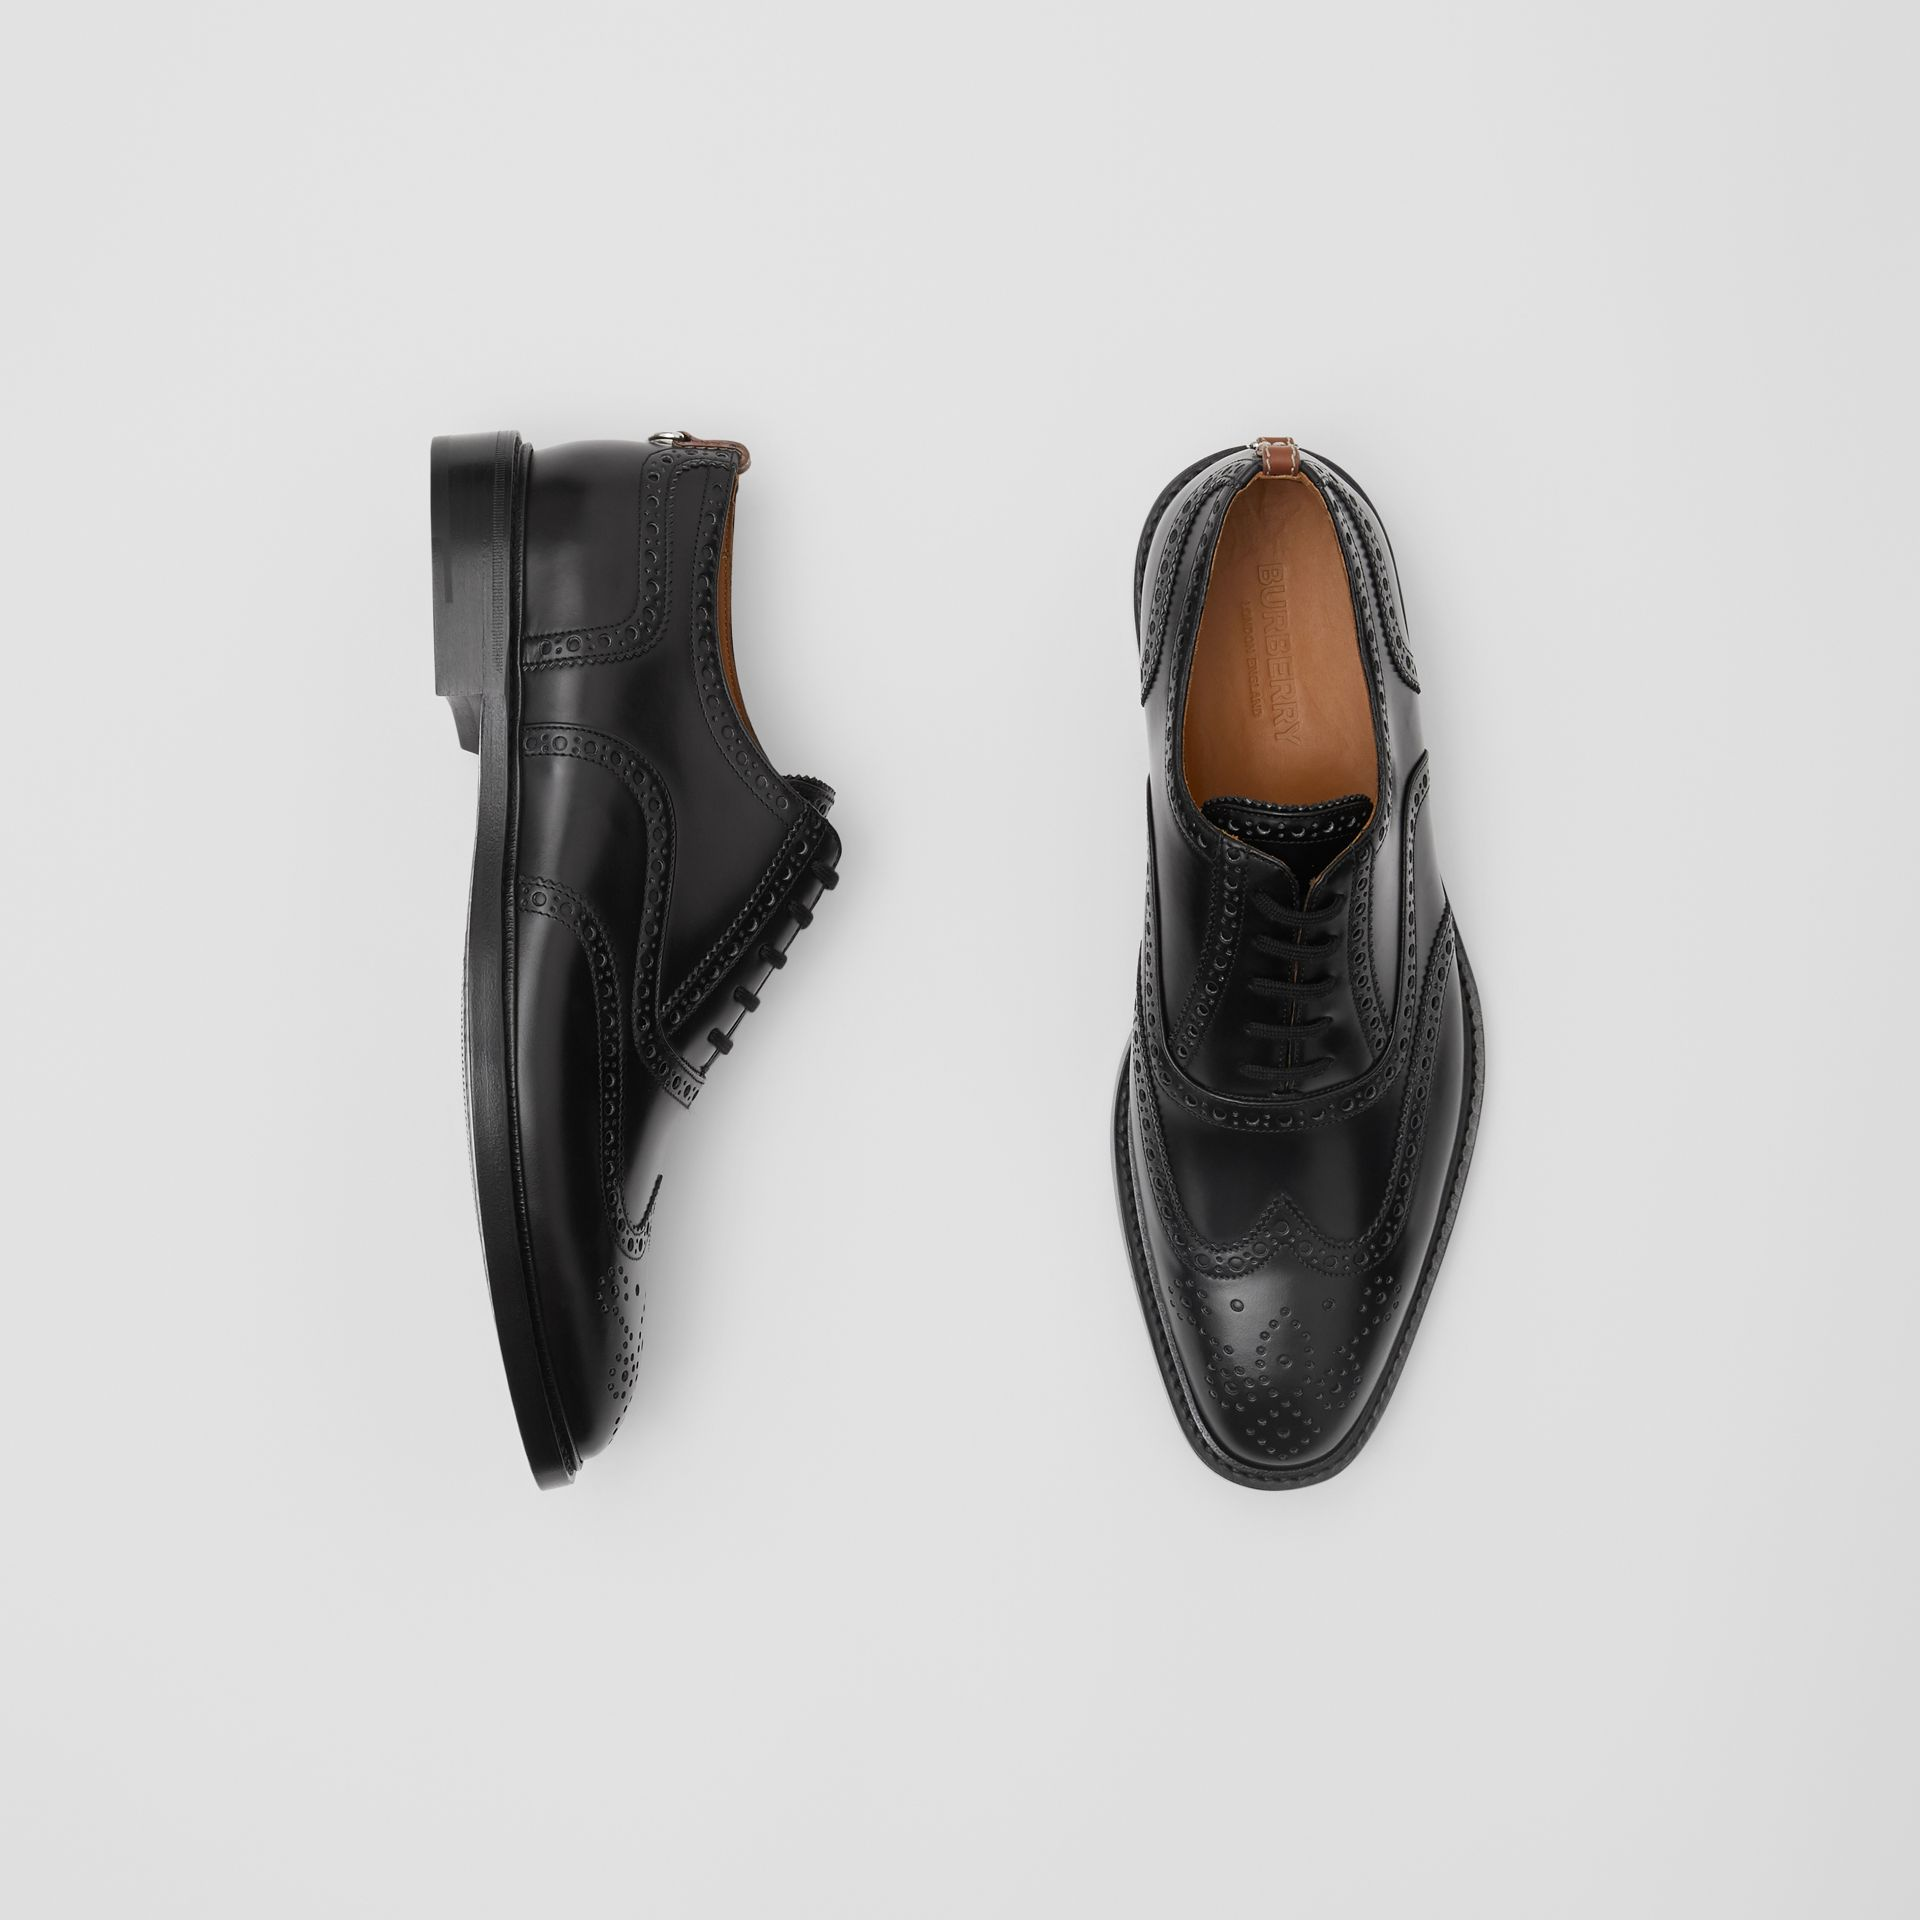 D-ring Detail Patent Leather Oxford Brogues in Black - Men | Burberry - gallery image 0